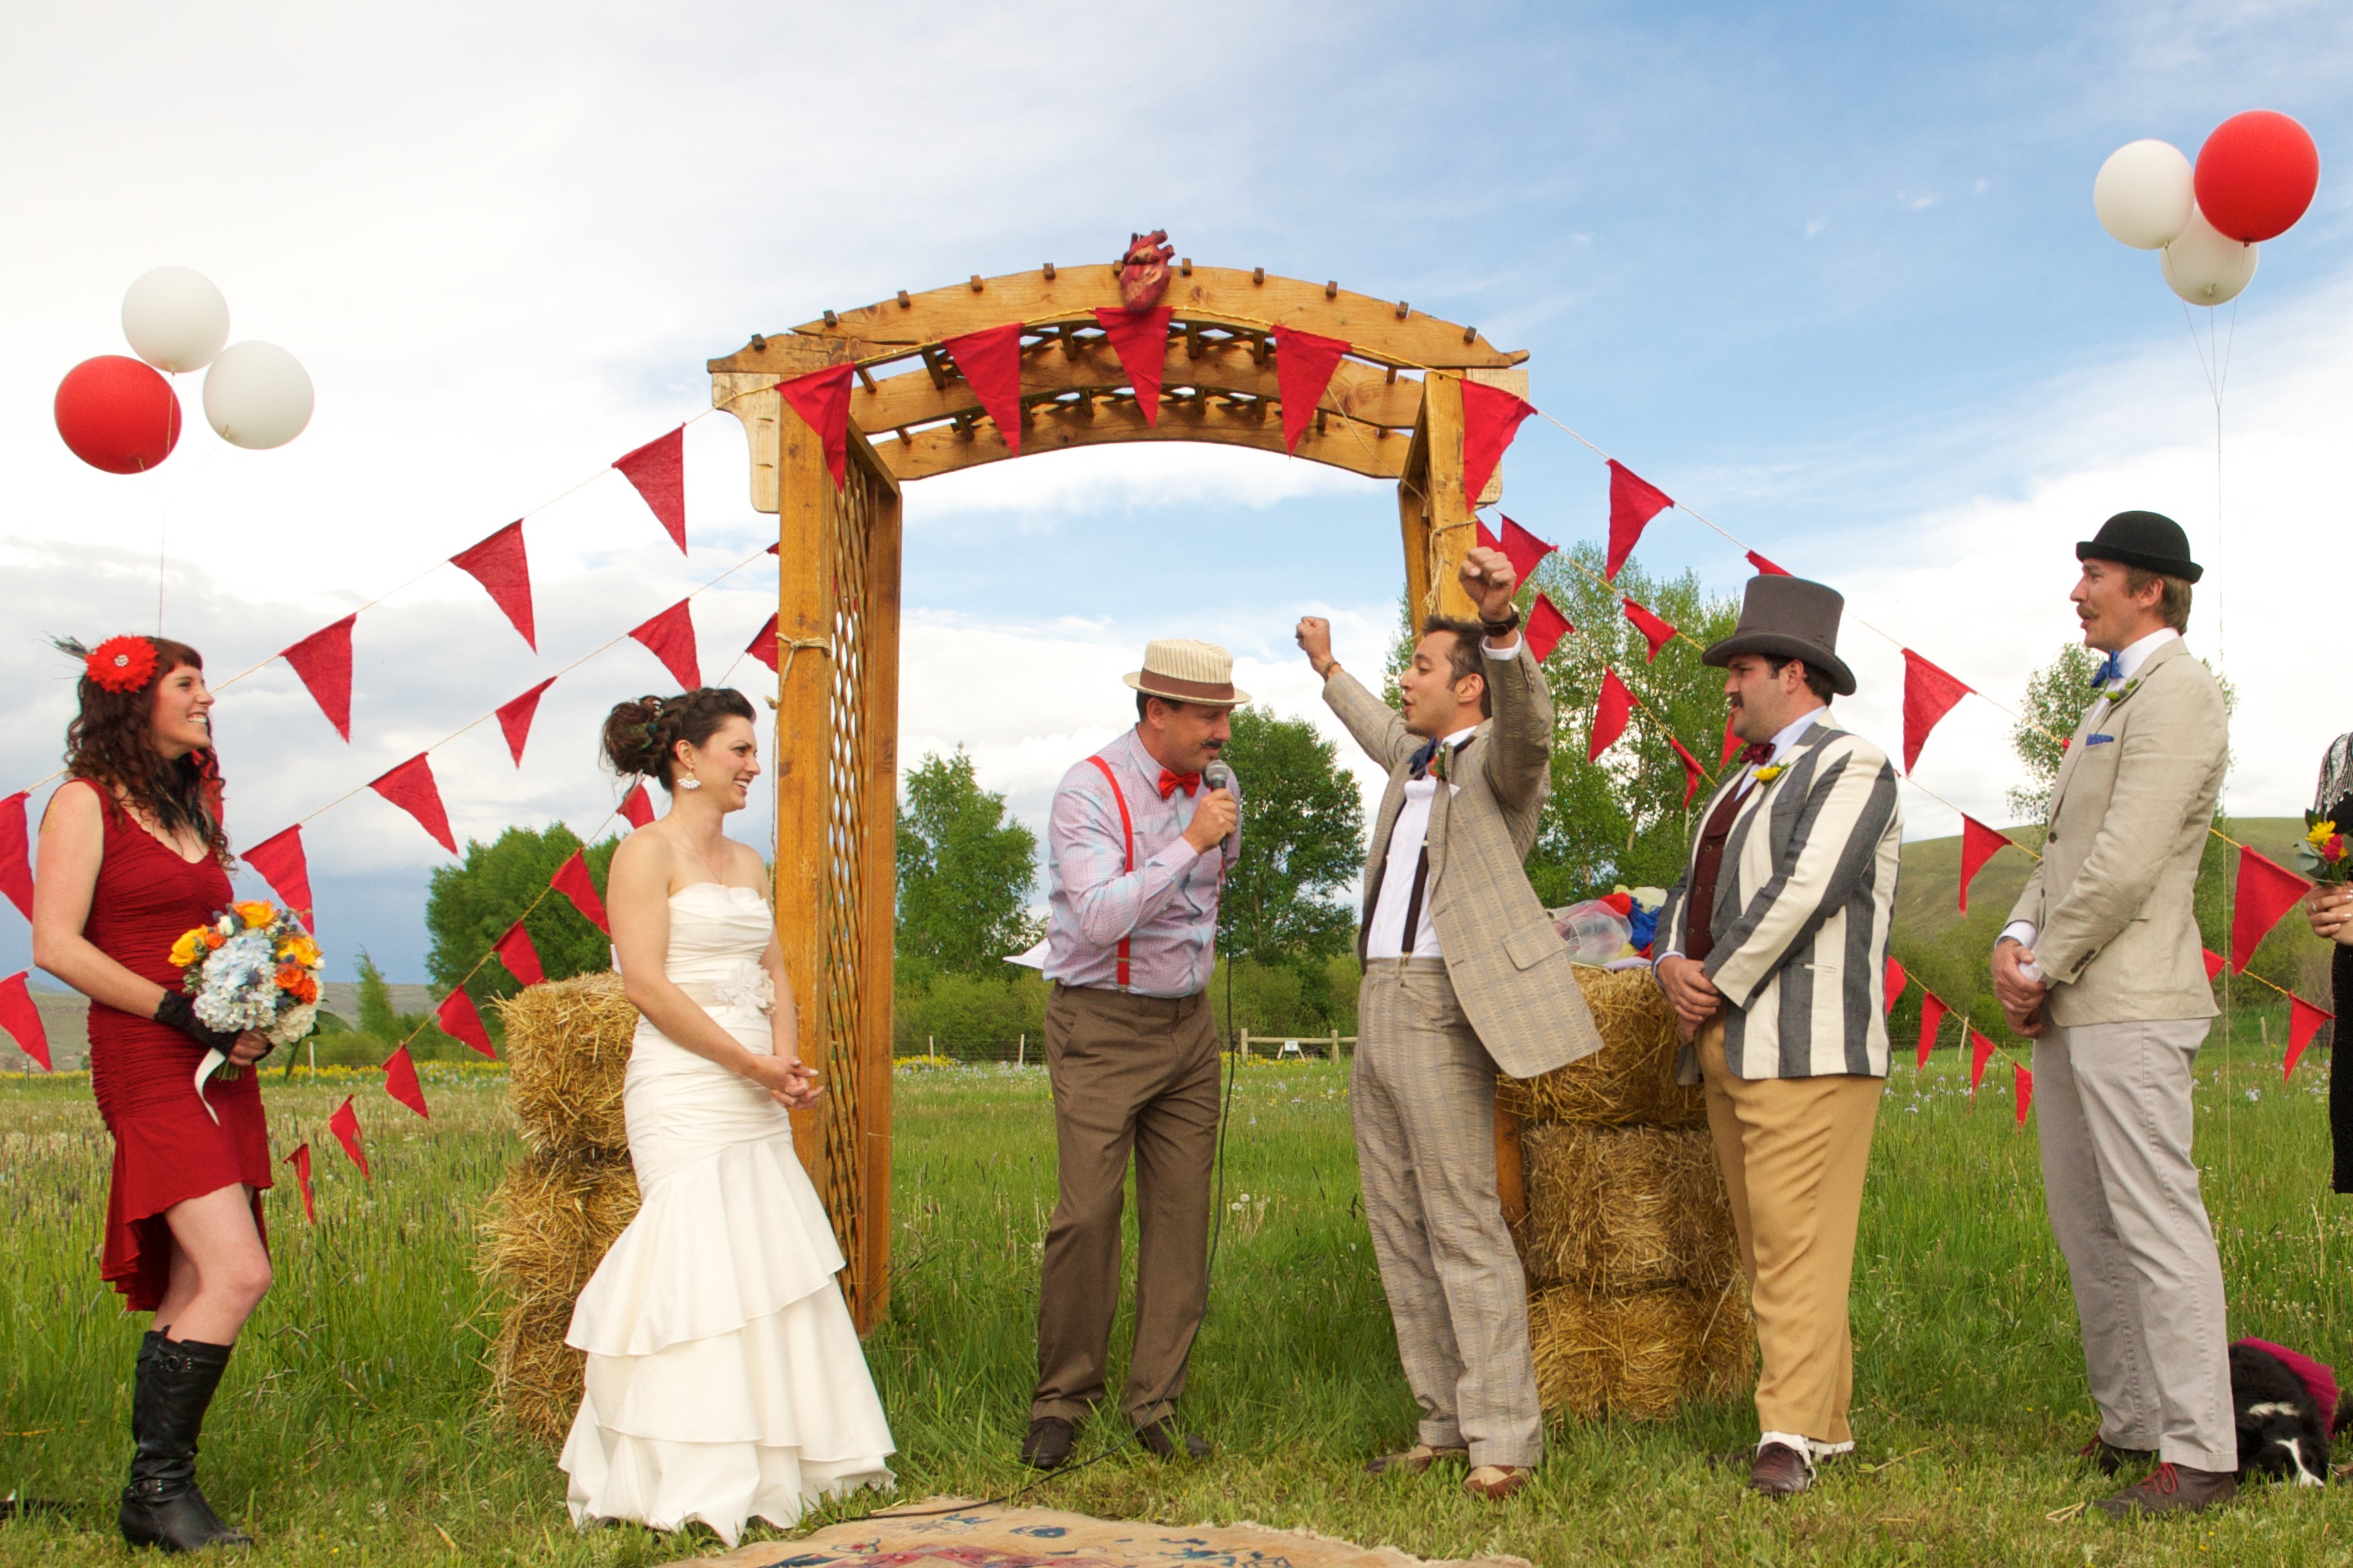 Circus Themed Wedding The Unique And Unexpected Elements